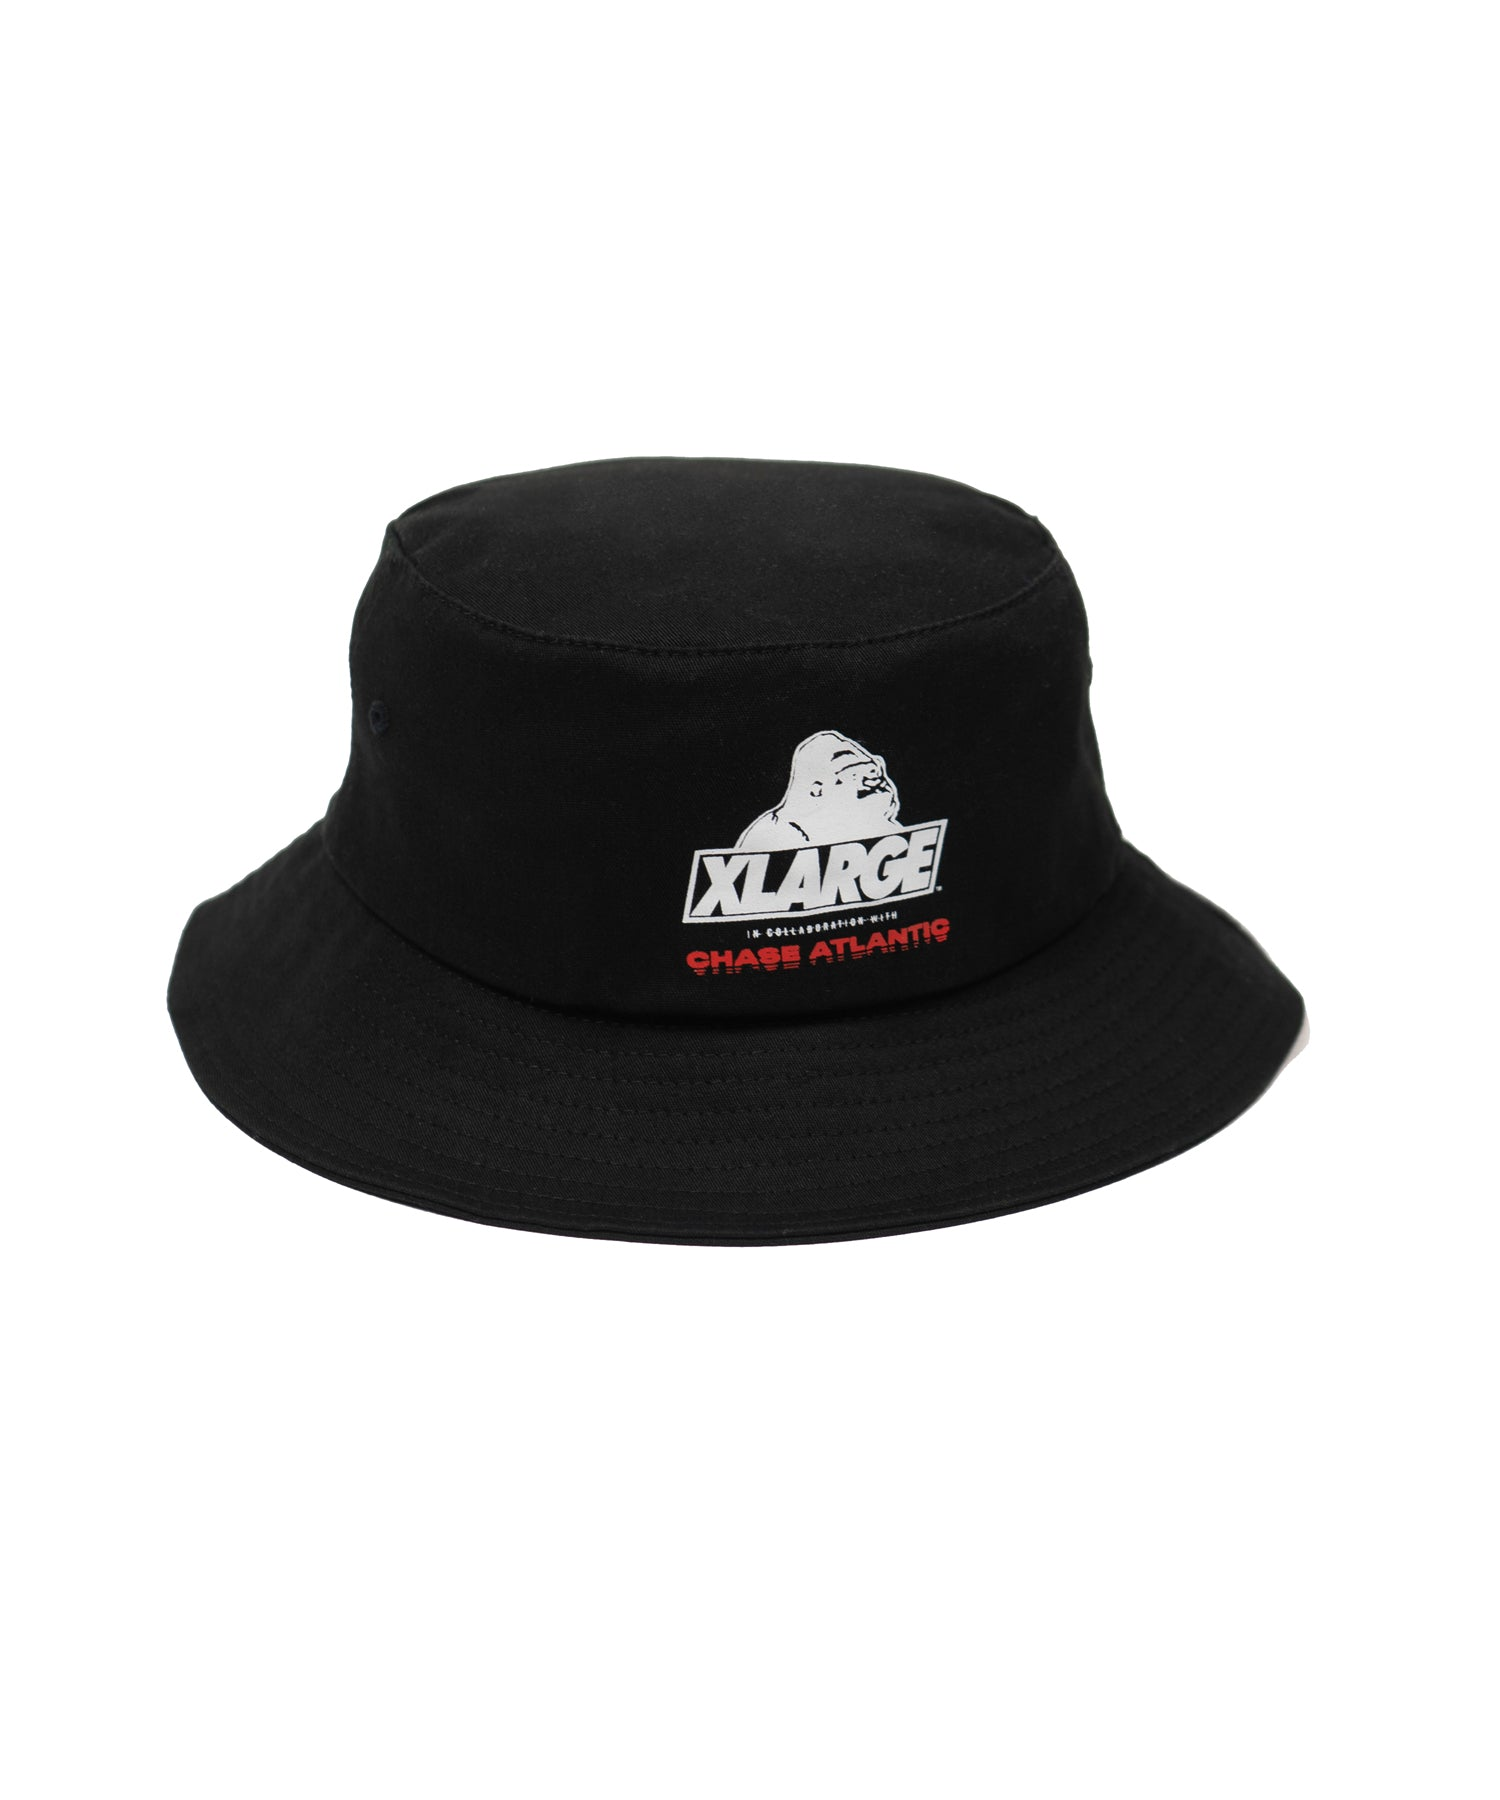 sports shoes eaf1d 02f44 CHASE ATLANTIC CAUTION BUCKET HAT